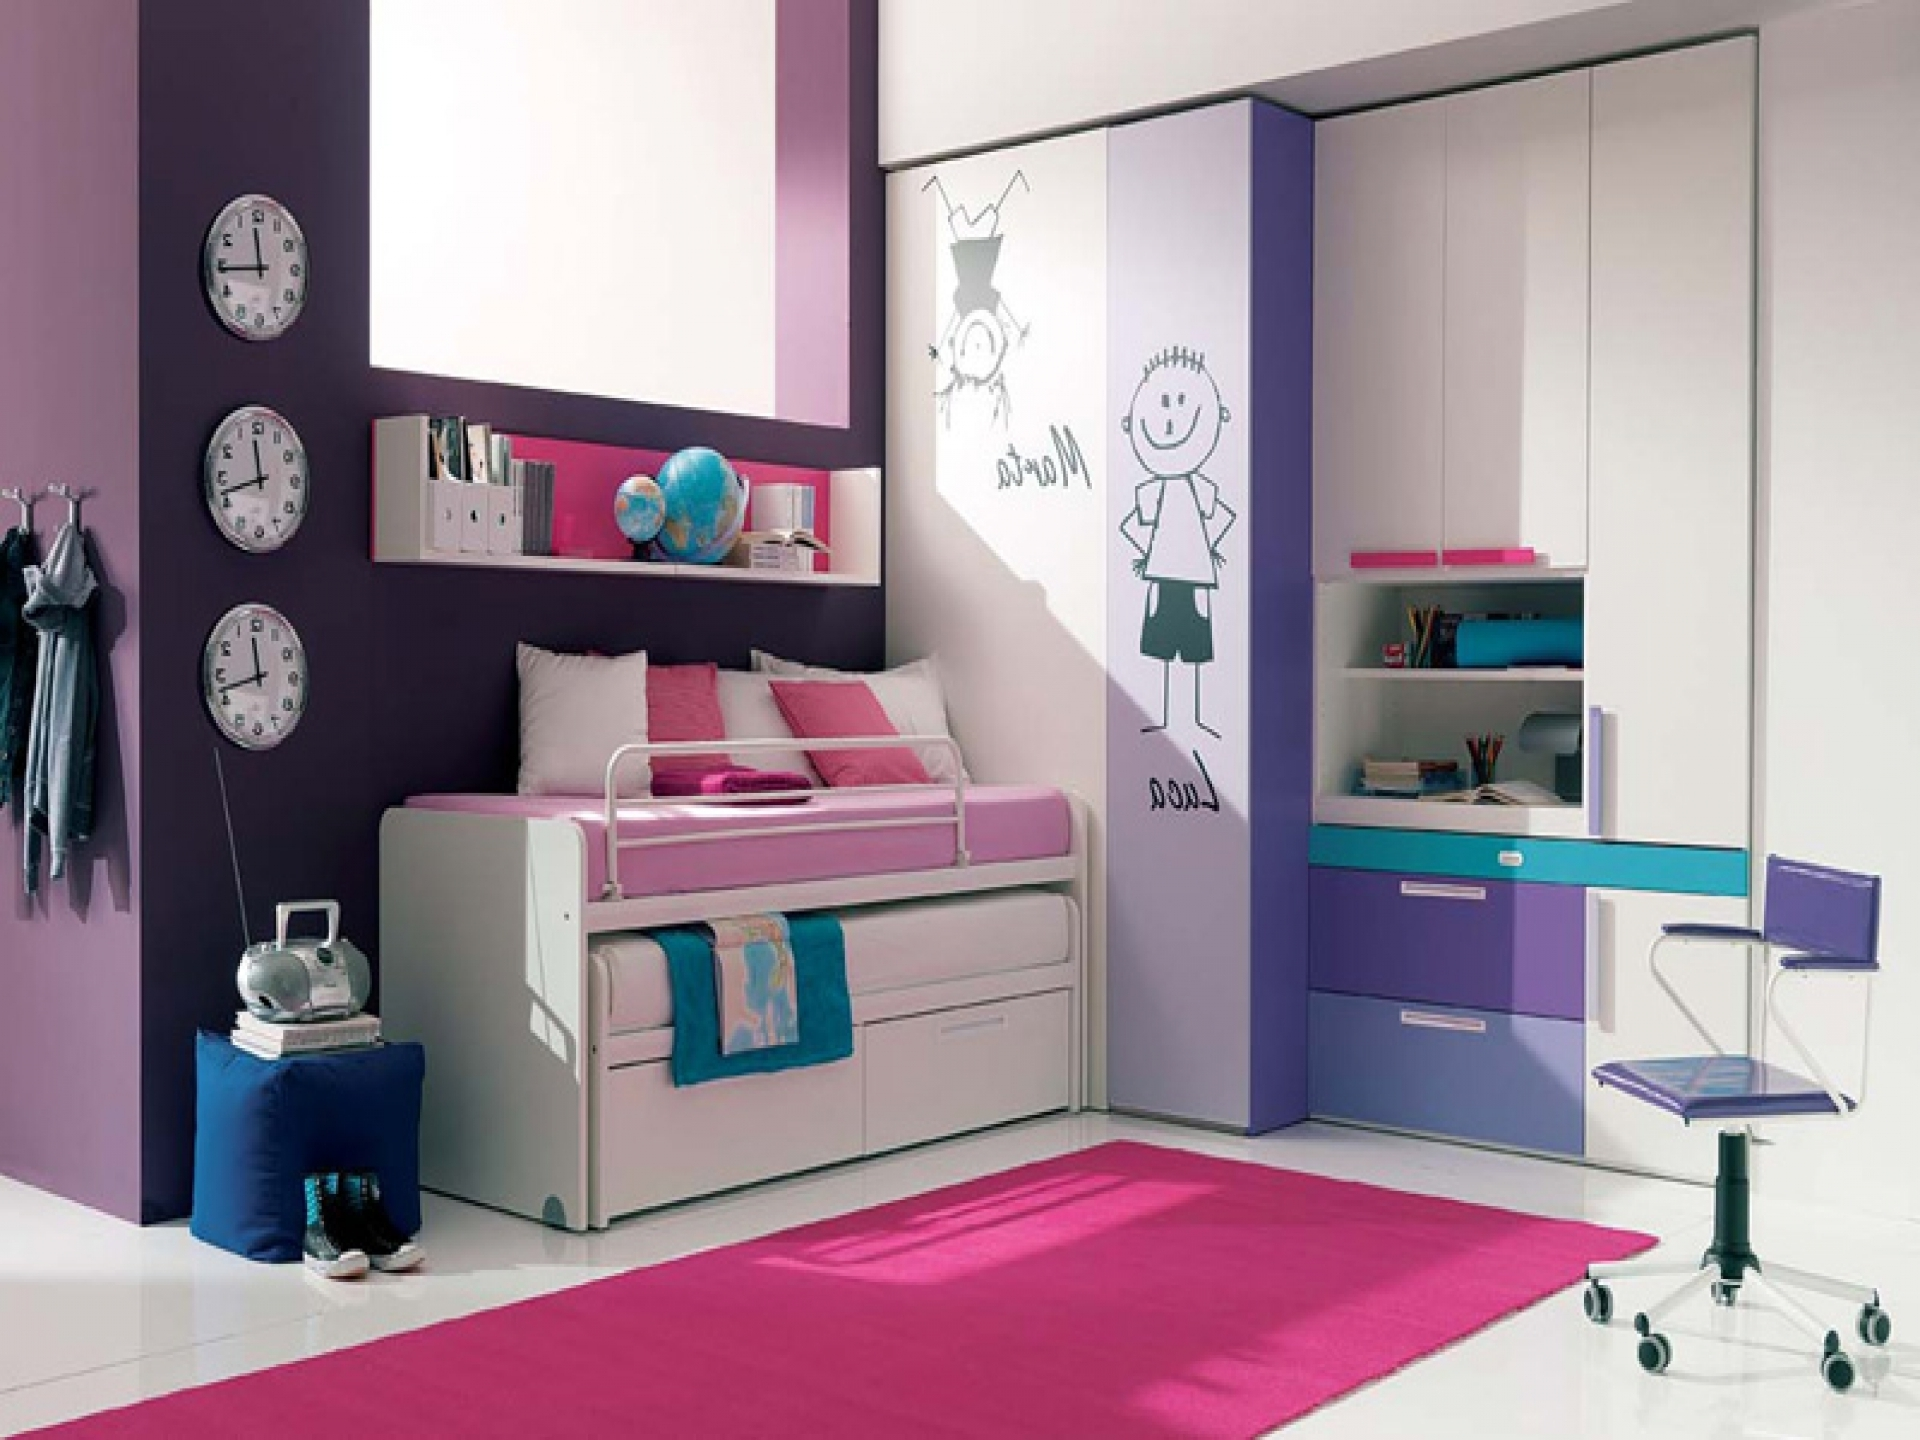 Cheap Room Decor Websites Cool Teenage Girl Ideas Bedroom Design A Online Atmosphere Girls Crazy Teen Things Home Apppie Org